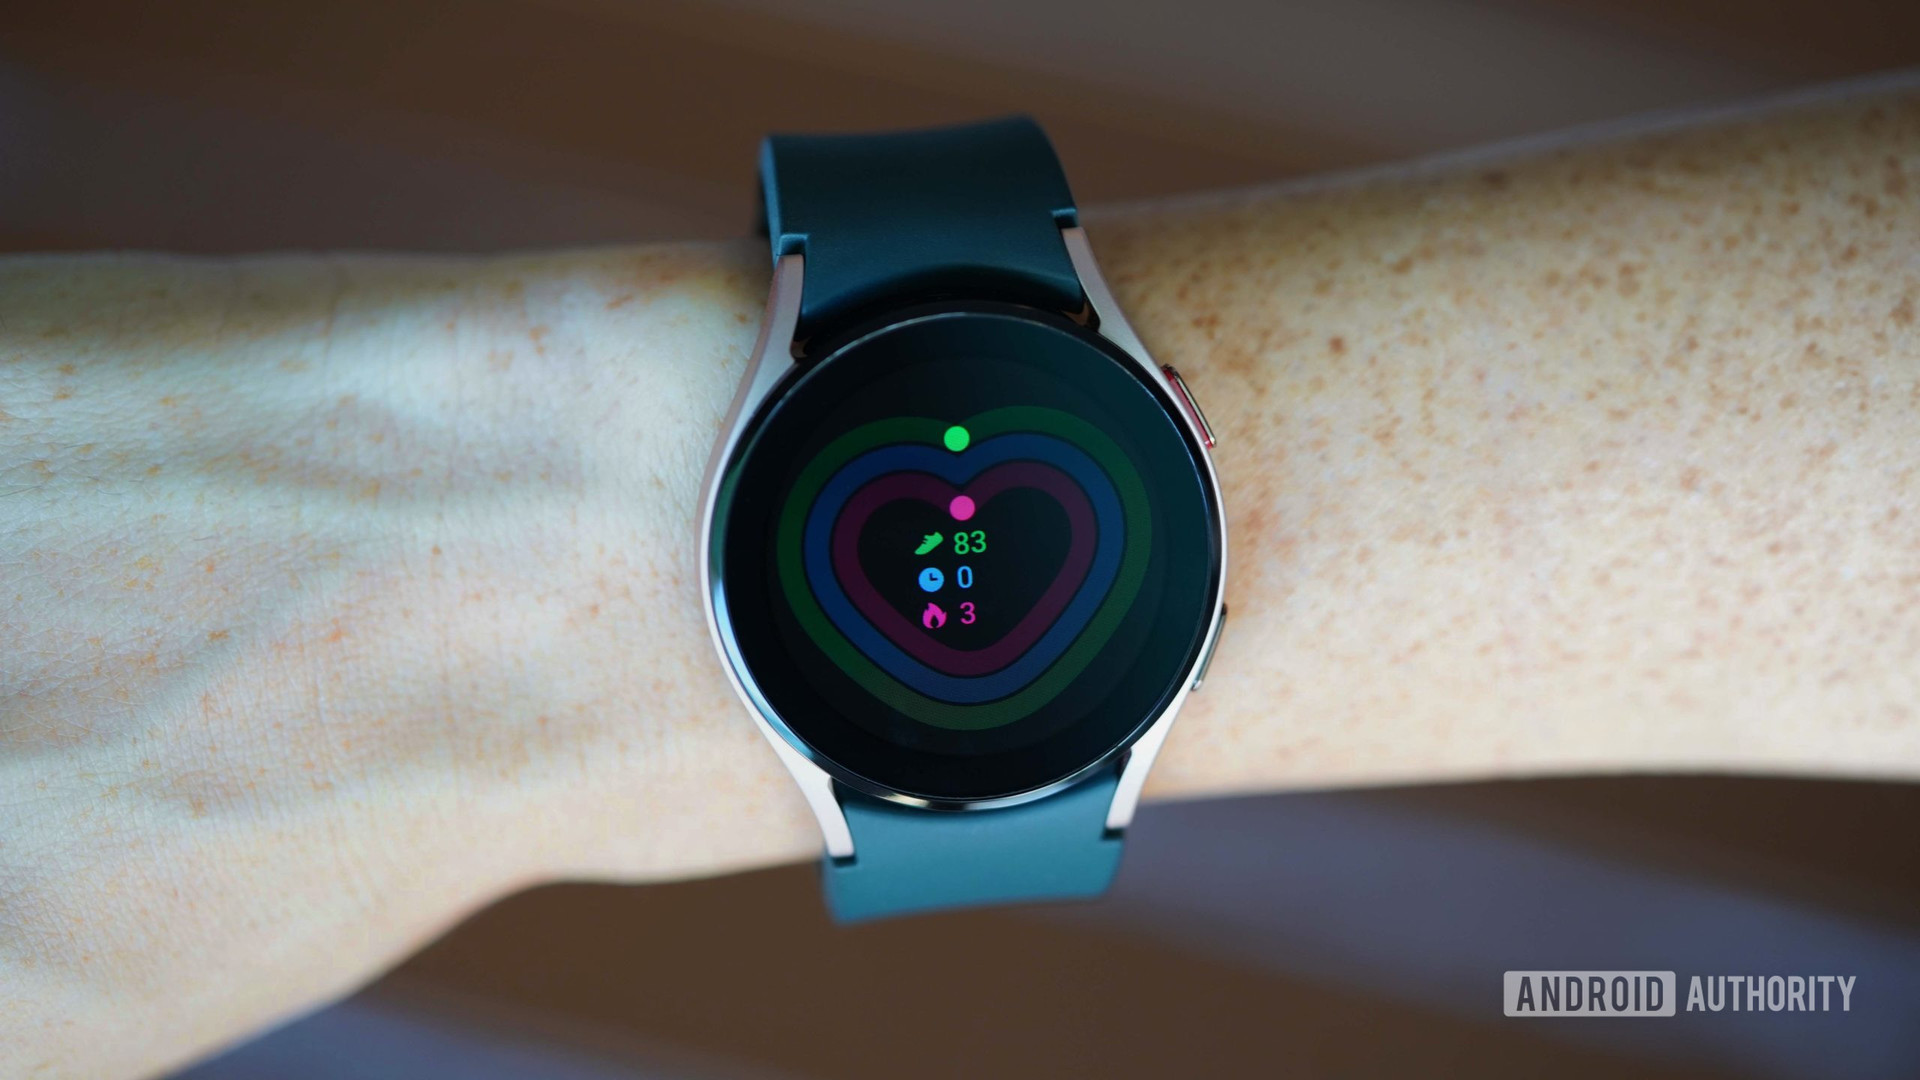 A Galaxy Watch 4 displays the Daily Activity screen hovering over a brown picnic table.